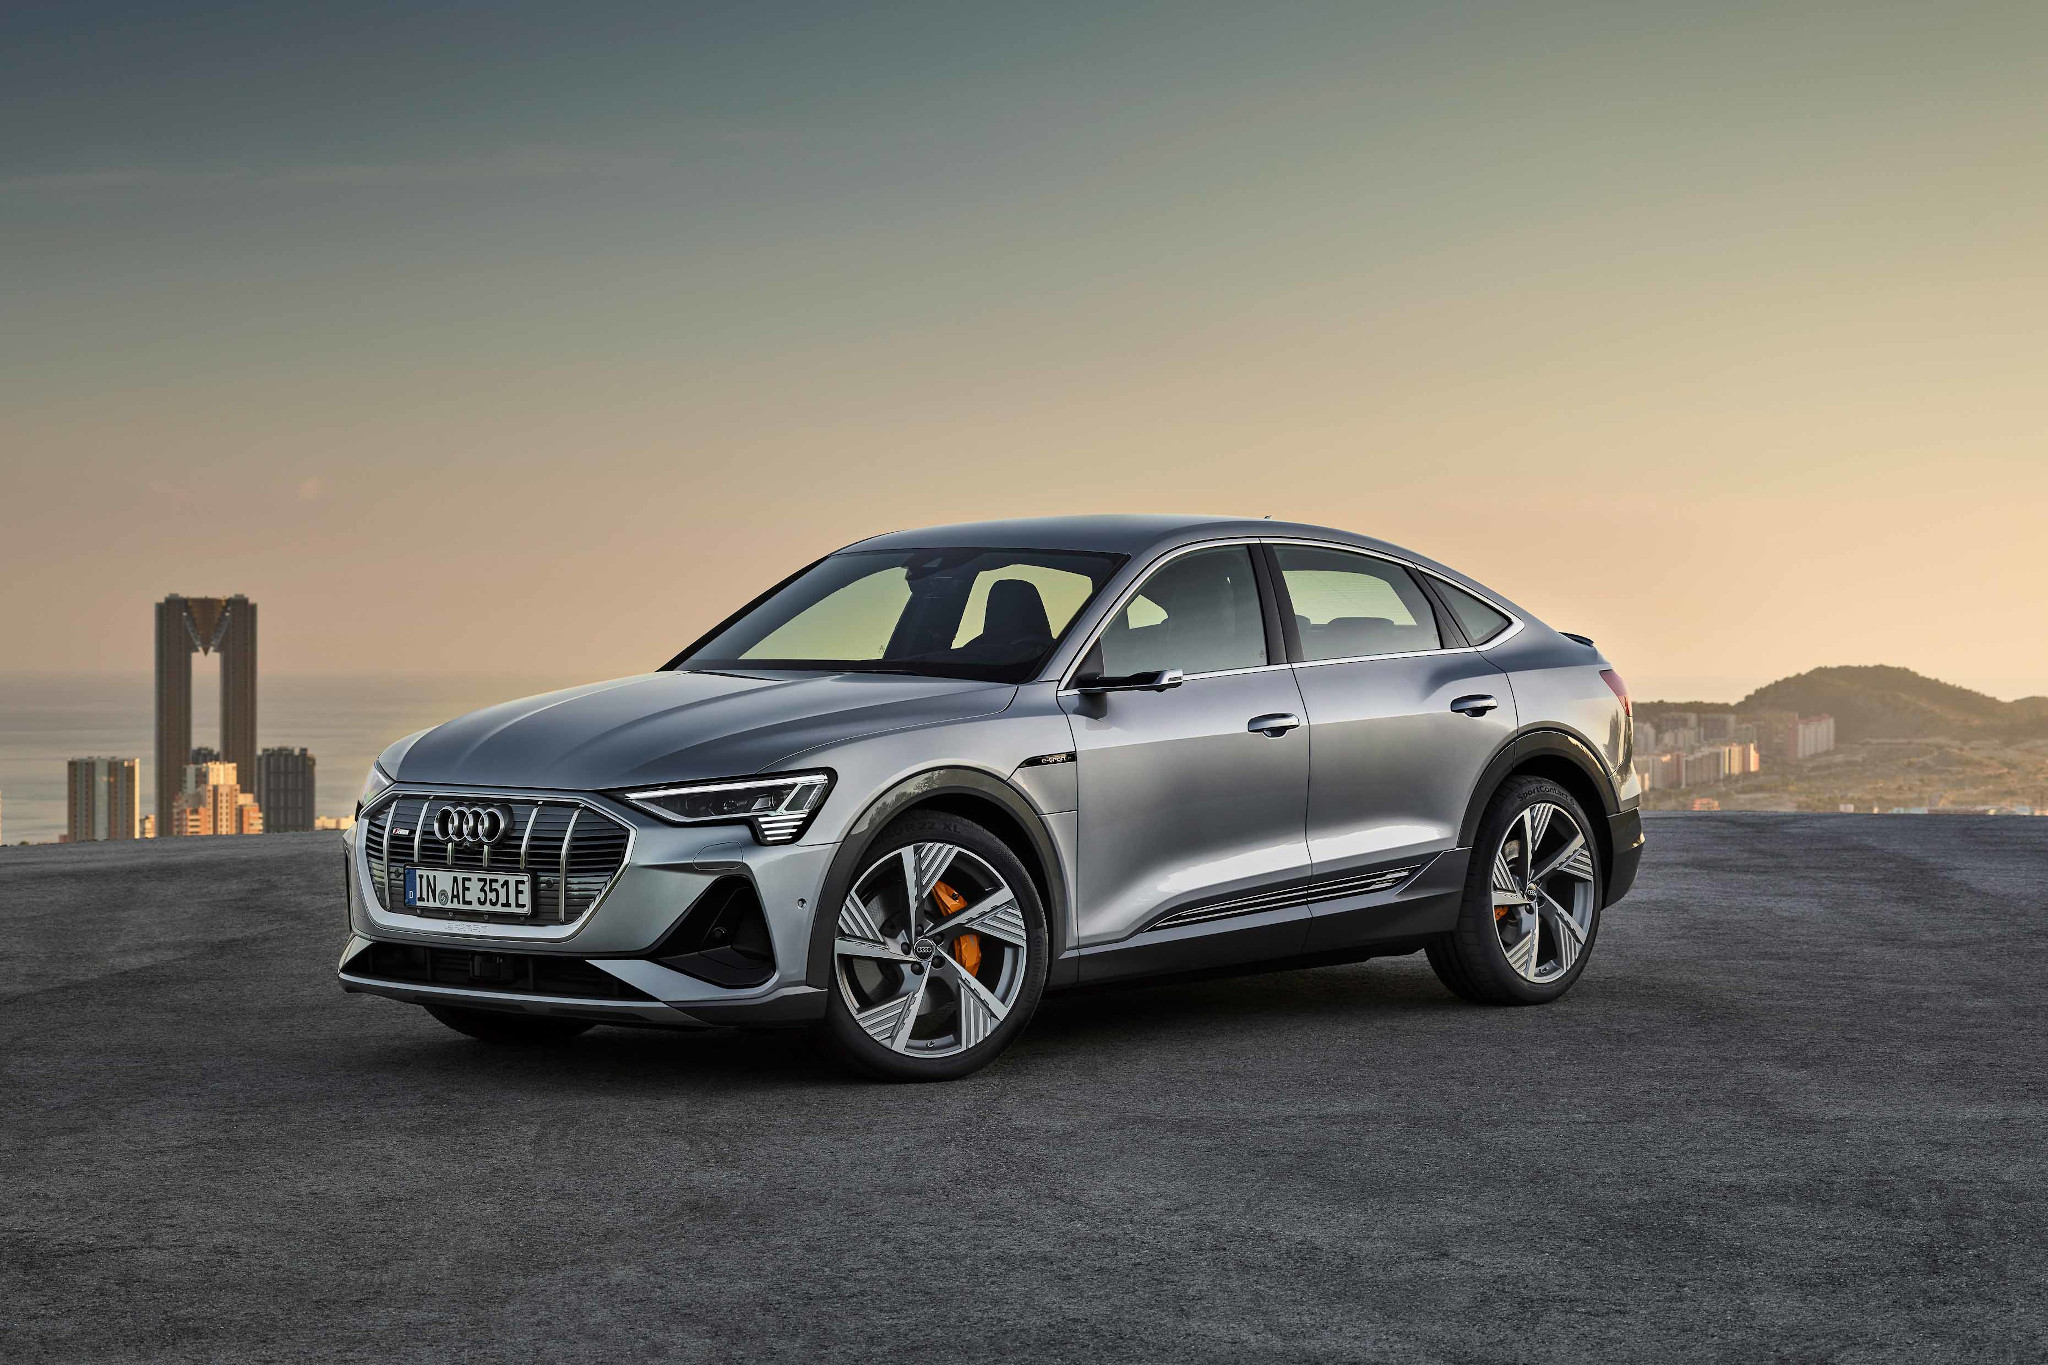 2020 Audi E-Tron Sportback: Sleek Looks Not Just for Show